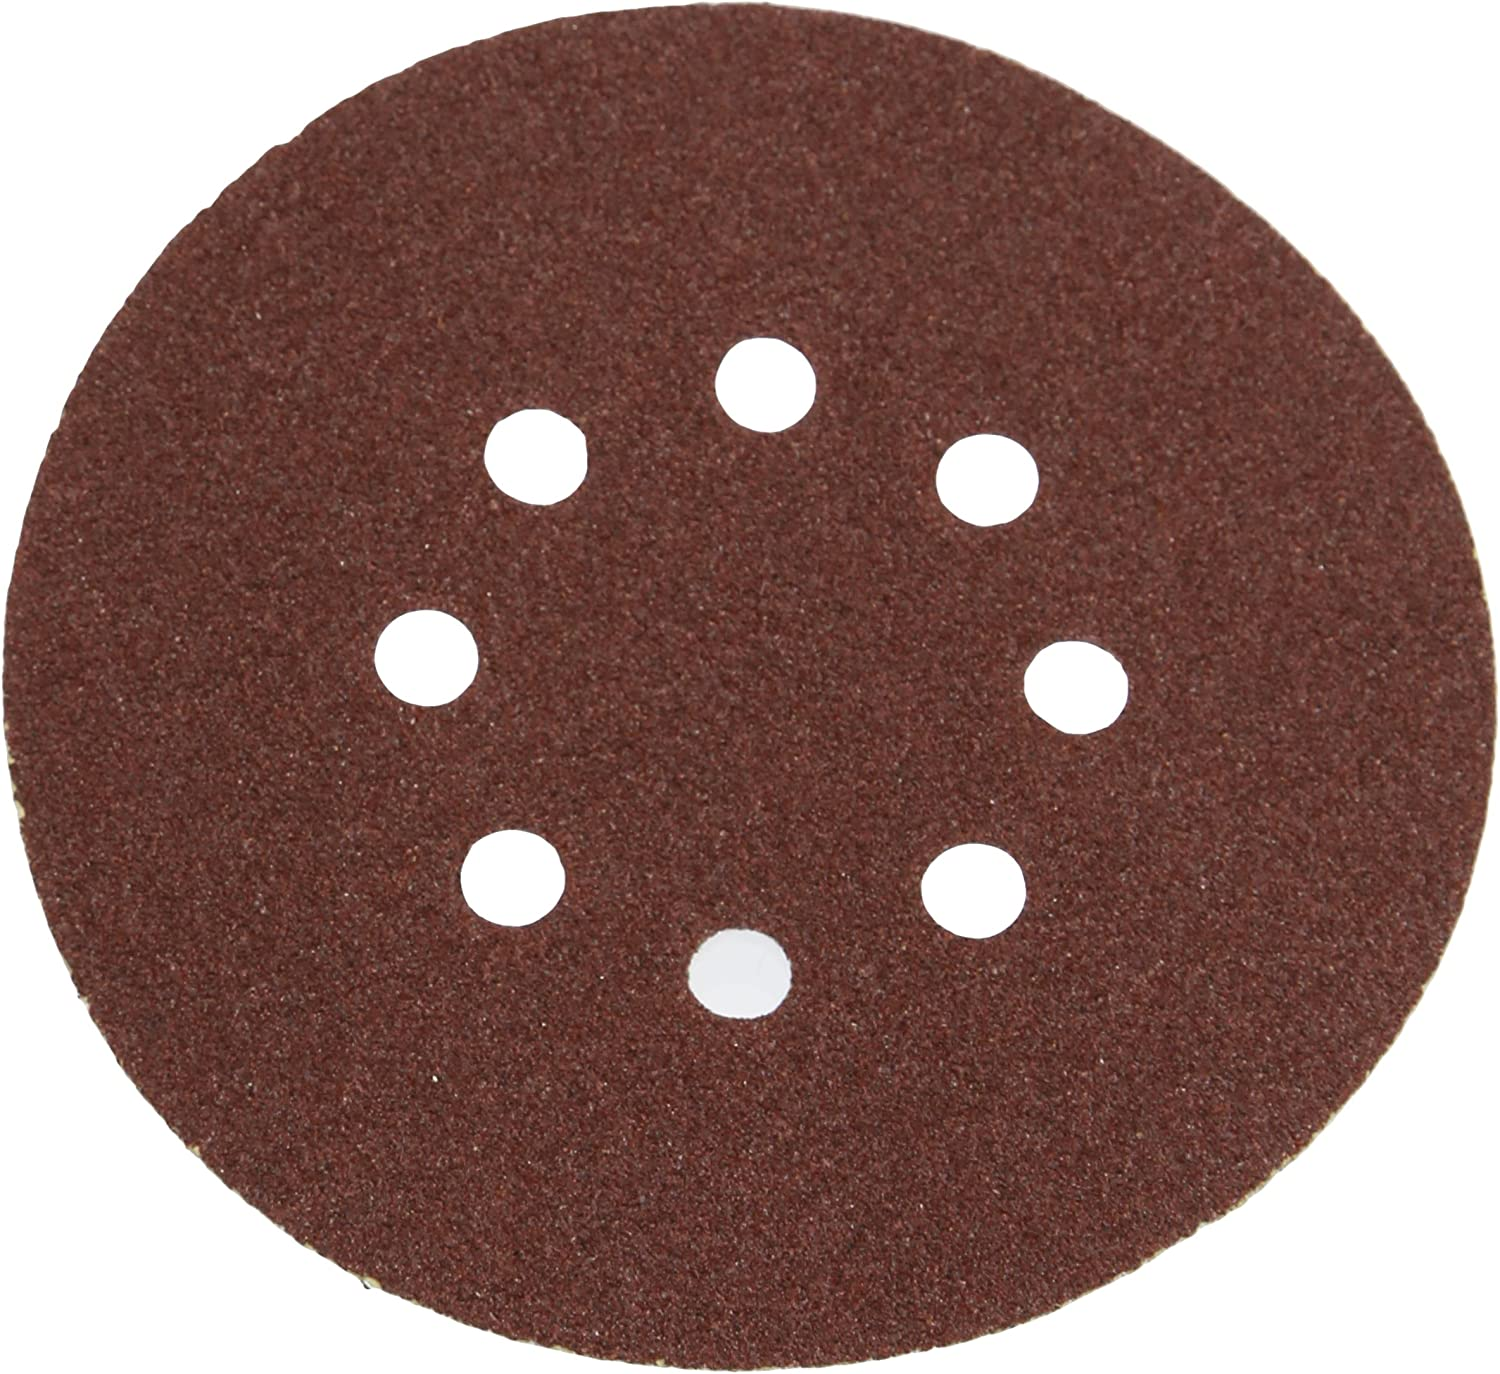 10 Pack 60 Grit Silverline 196571 Hook and Loop Discs Punched 150 mm